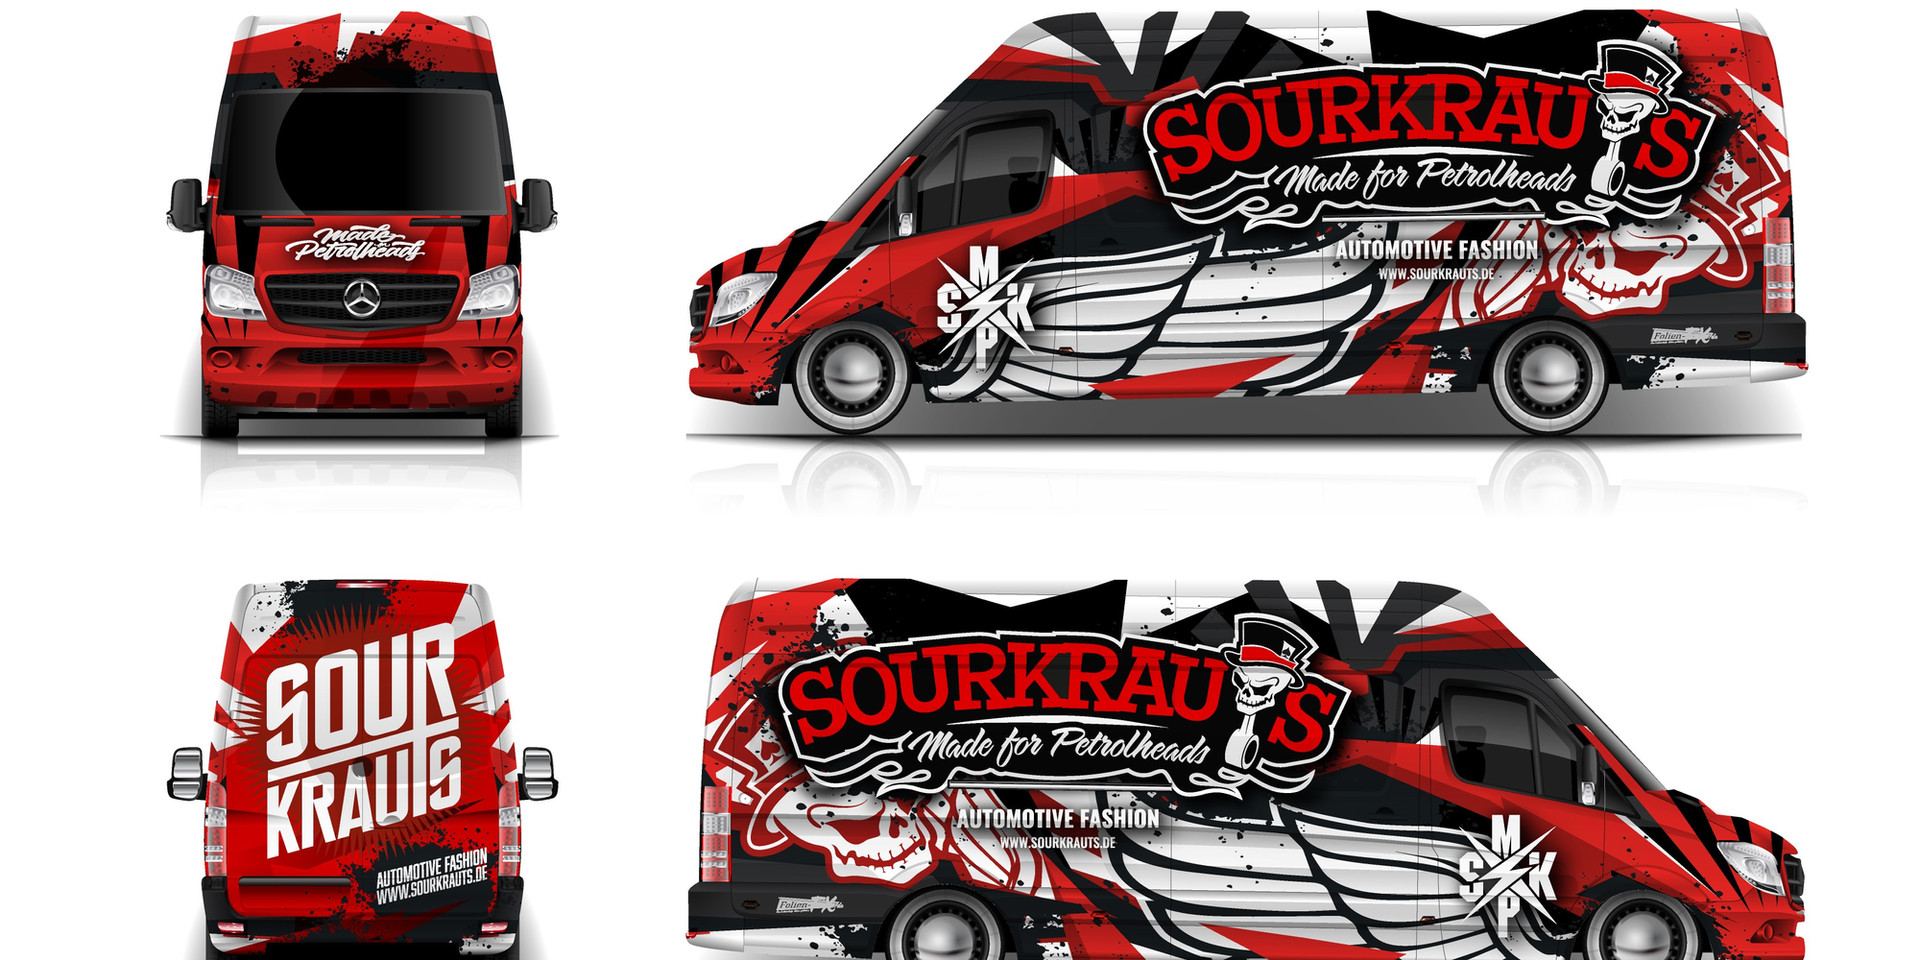 Sourkrauts Design